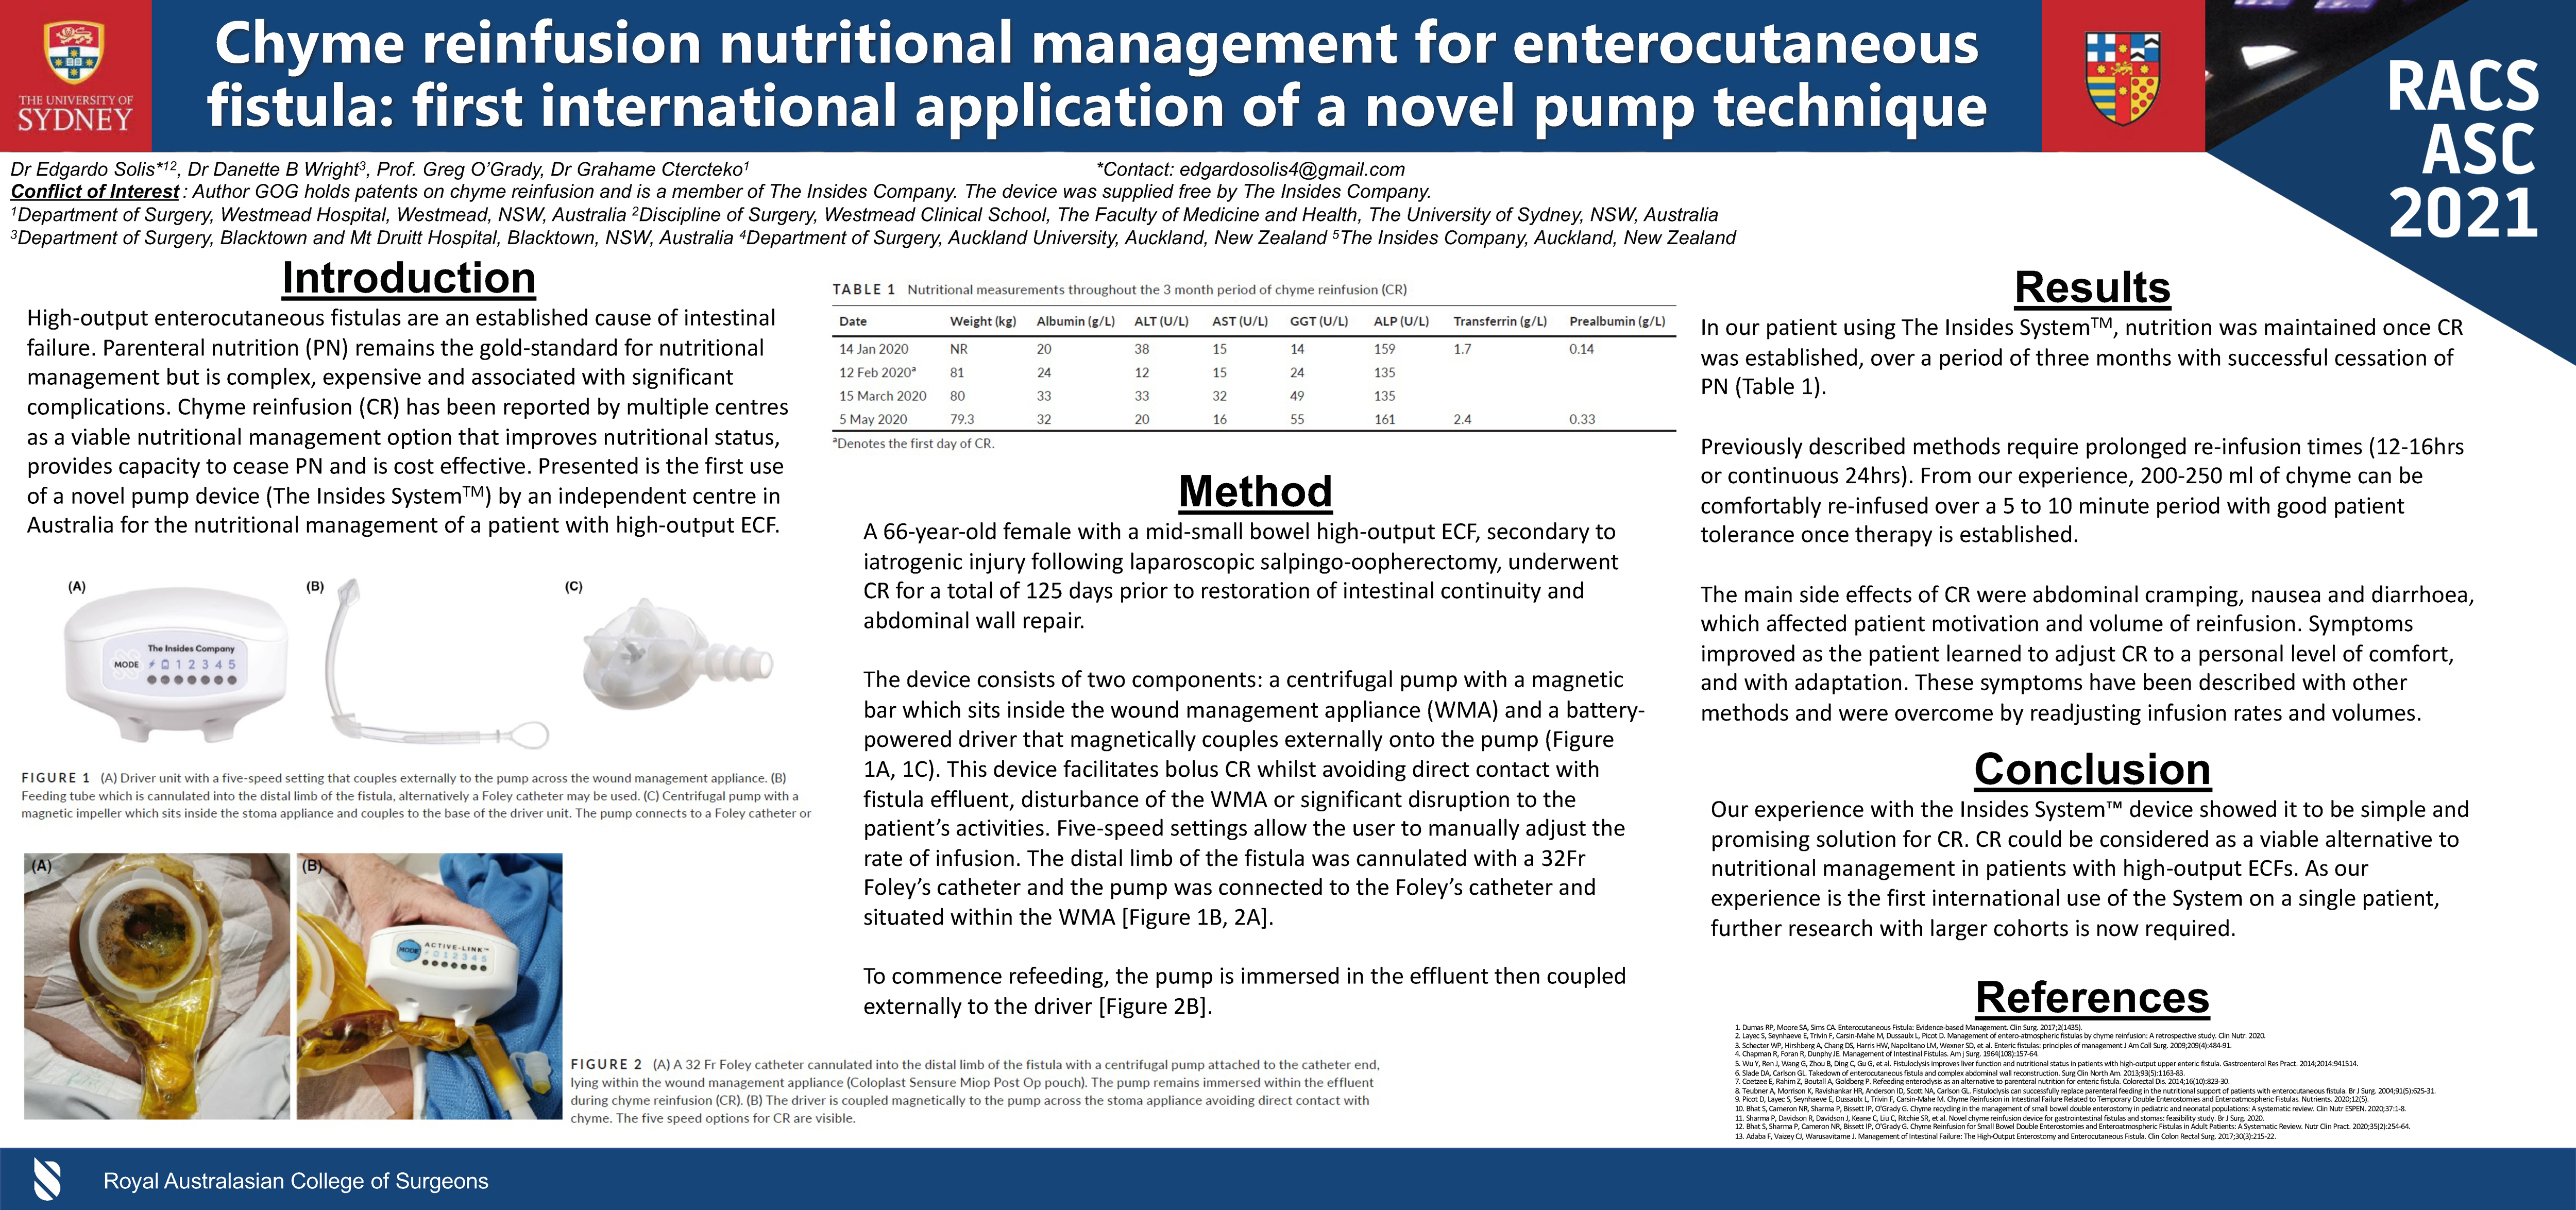 Chyme Reinfusion Nutritional Management for Enterocutaneous Fistula